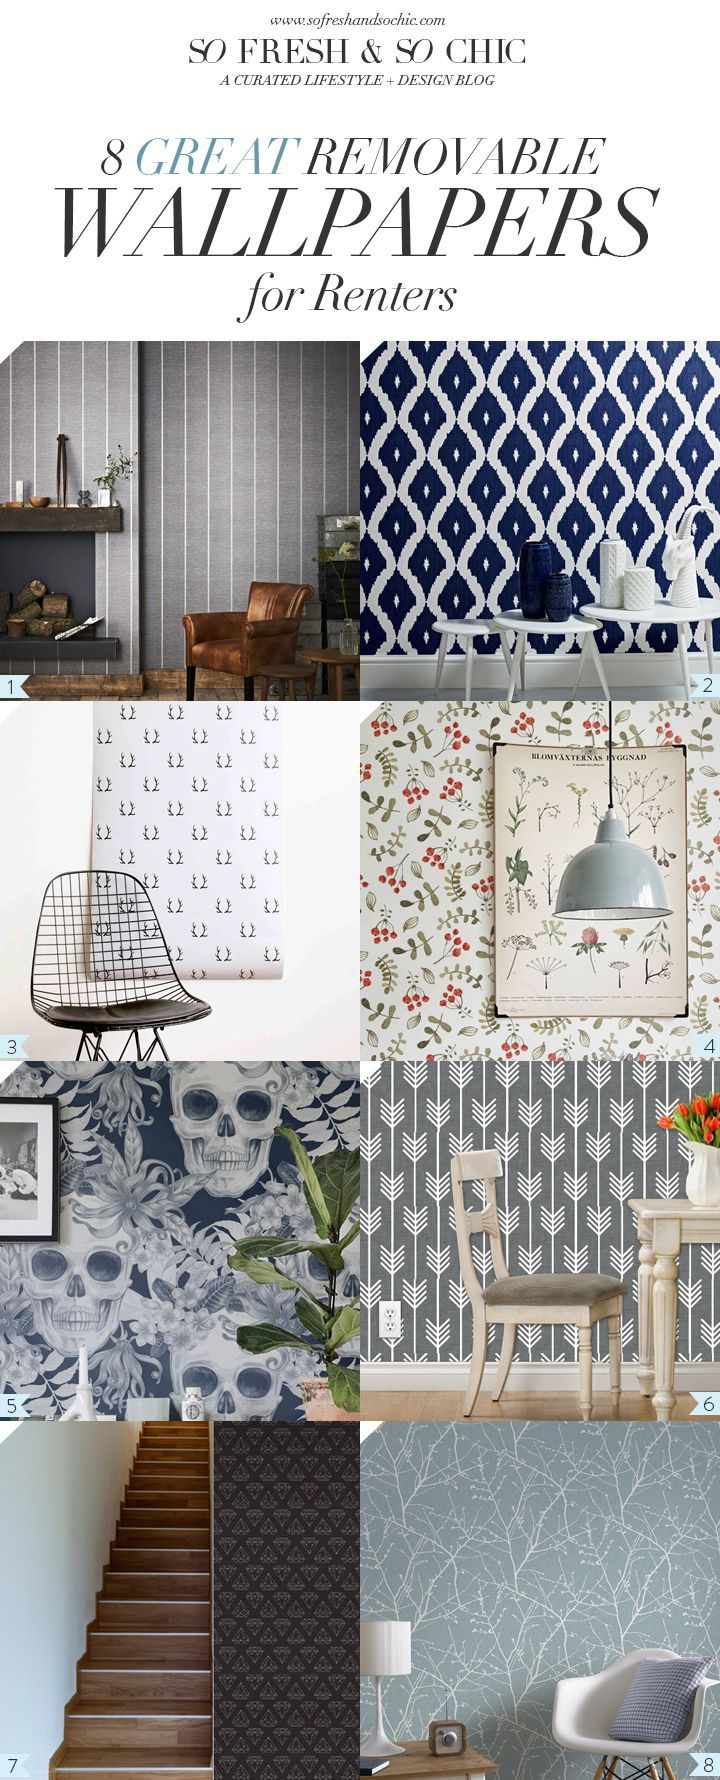 For the Home] 8 Great Removable Wallpapers for Renters | For the ...